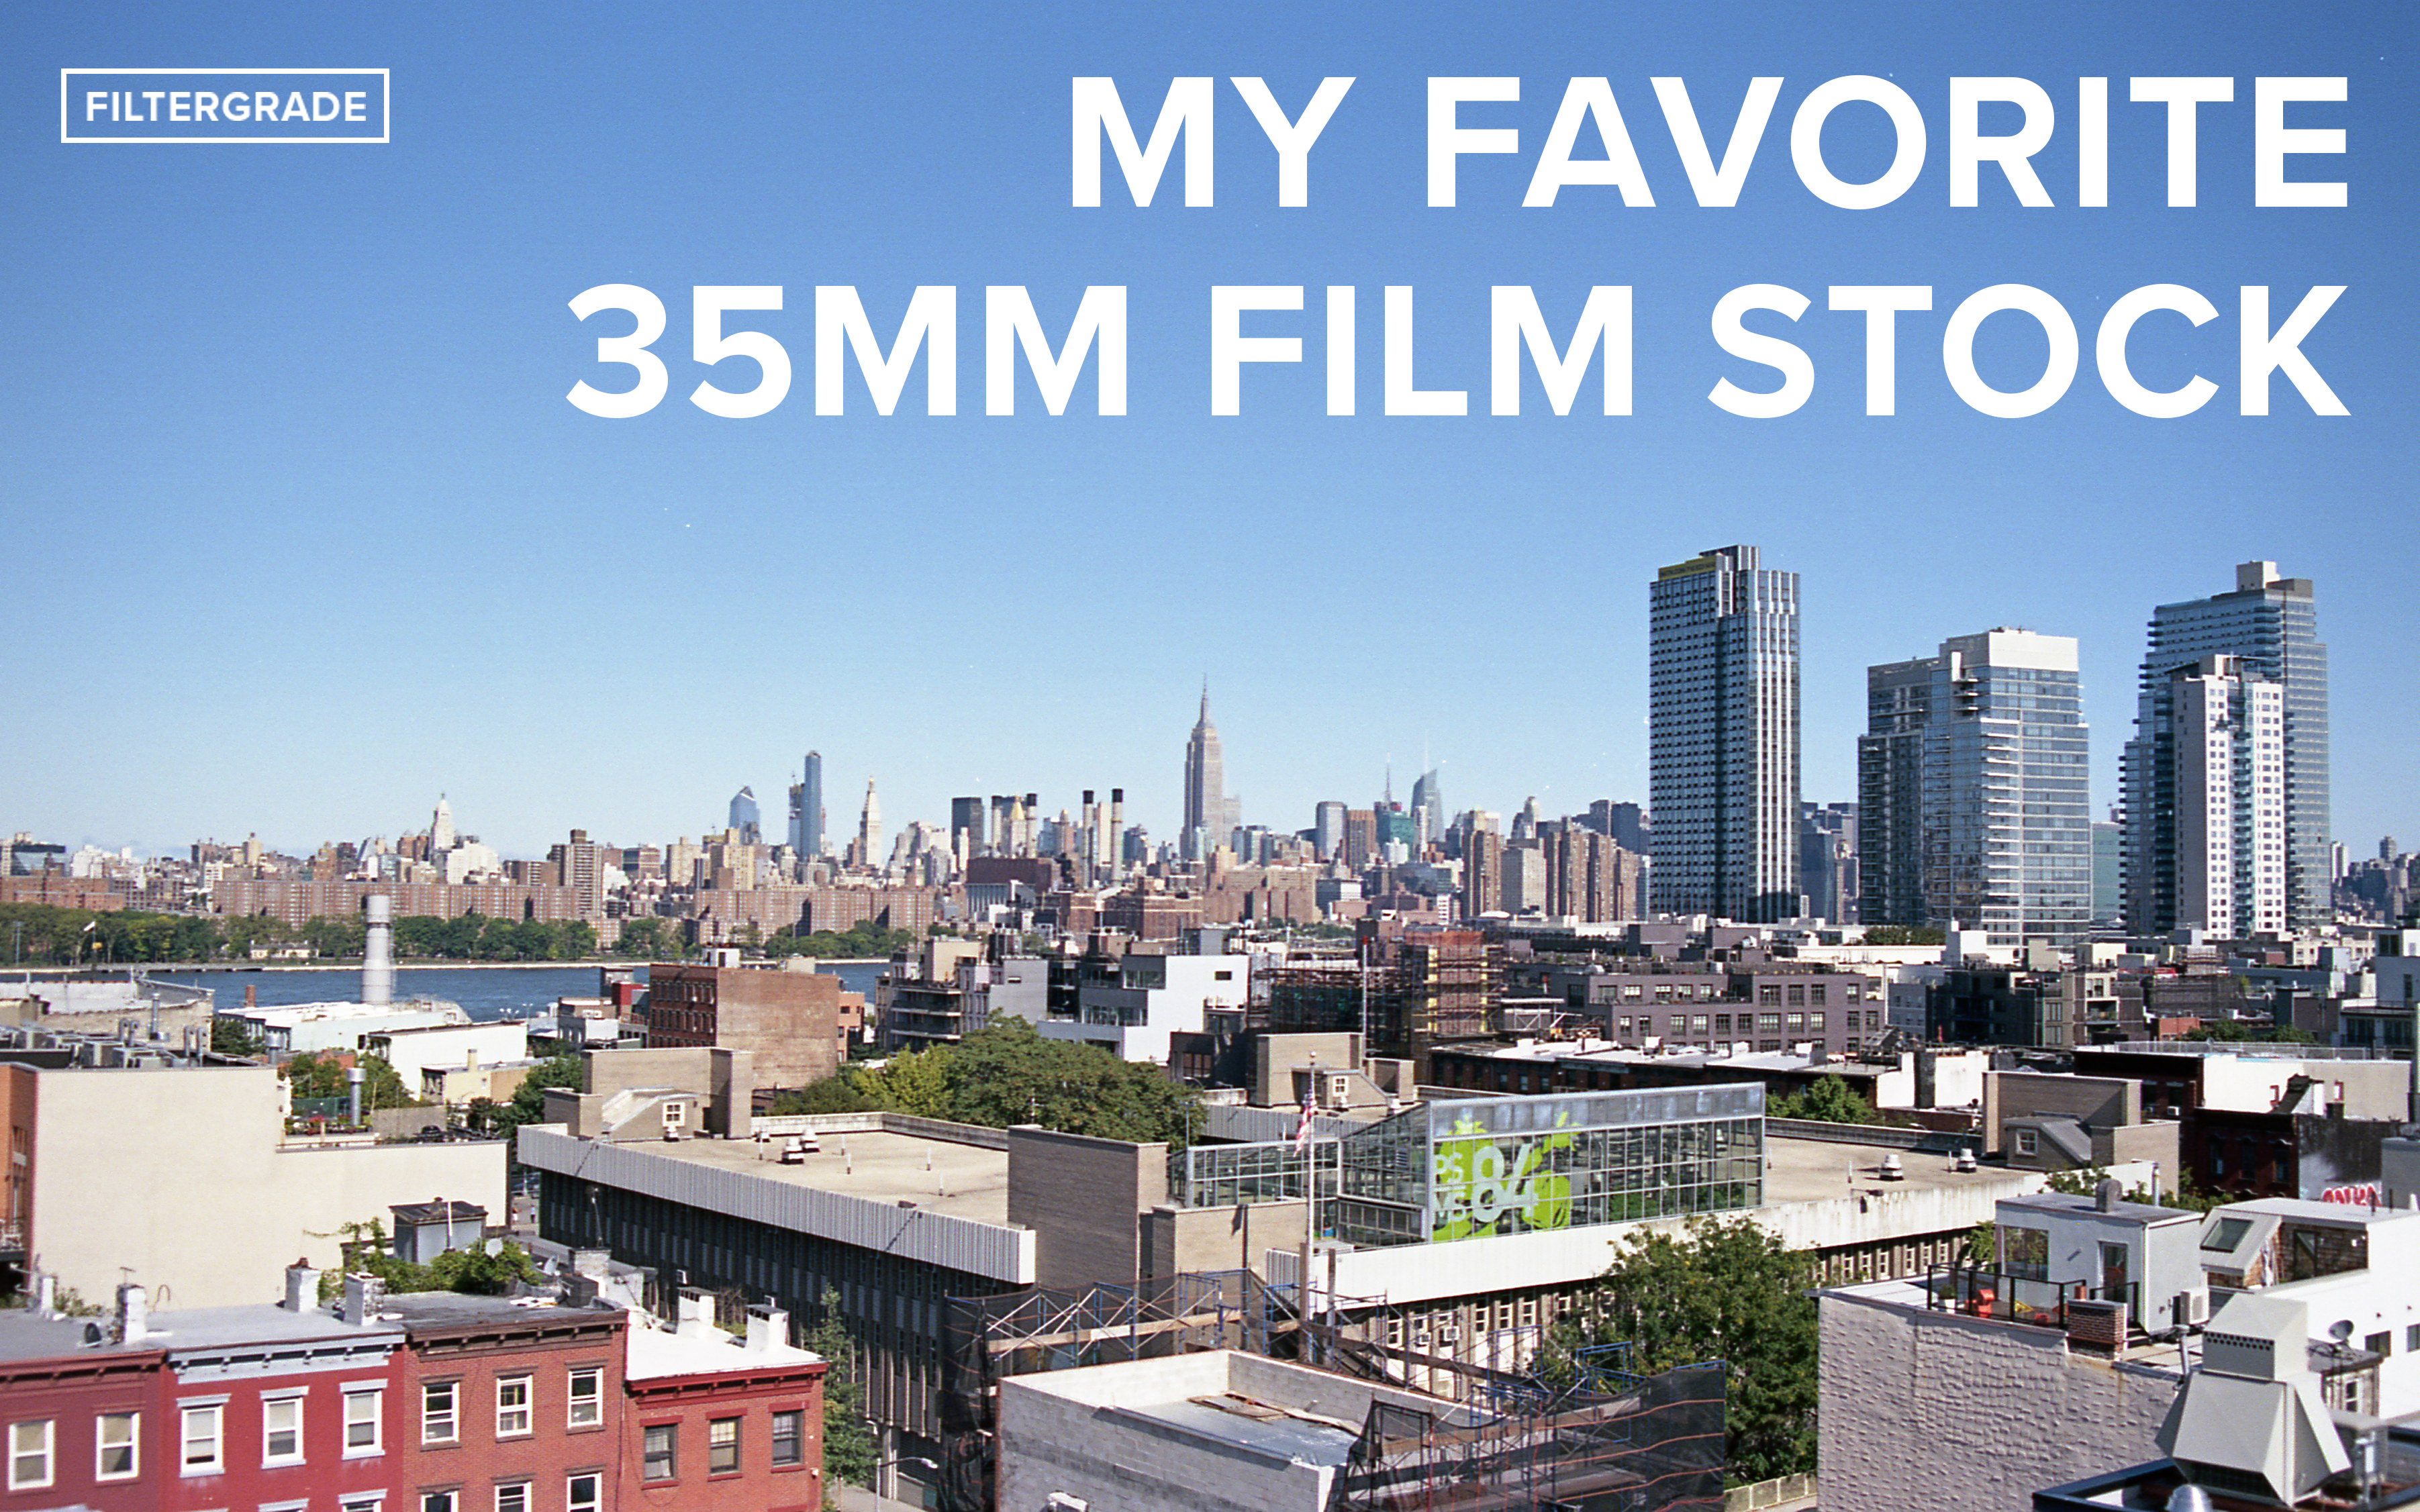 My Favorite 35mm Film Stock- FilterGrade